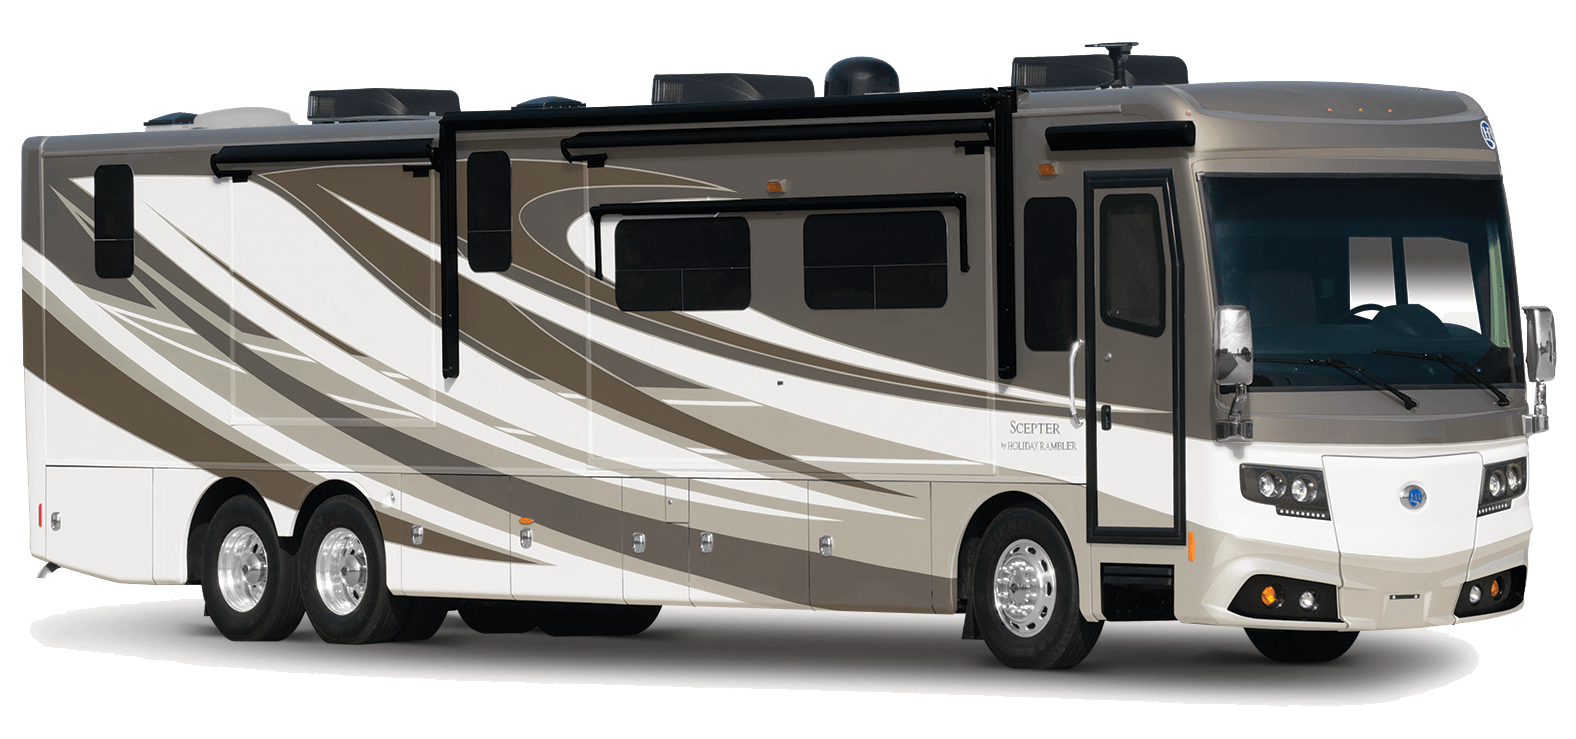 holiday rambler scepter general rv center rh generalrv com